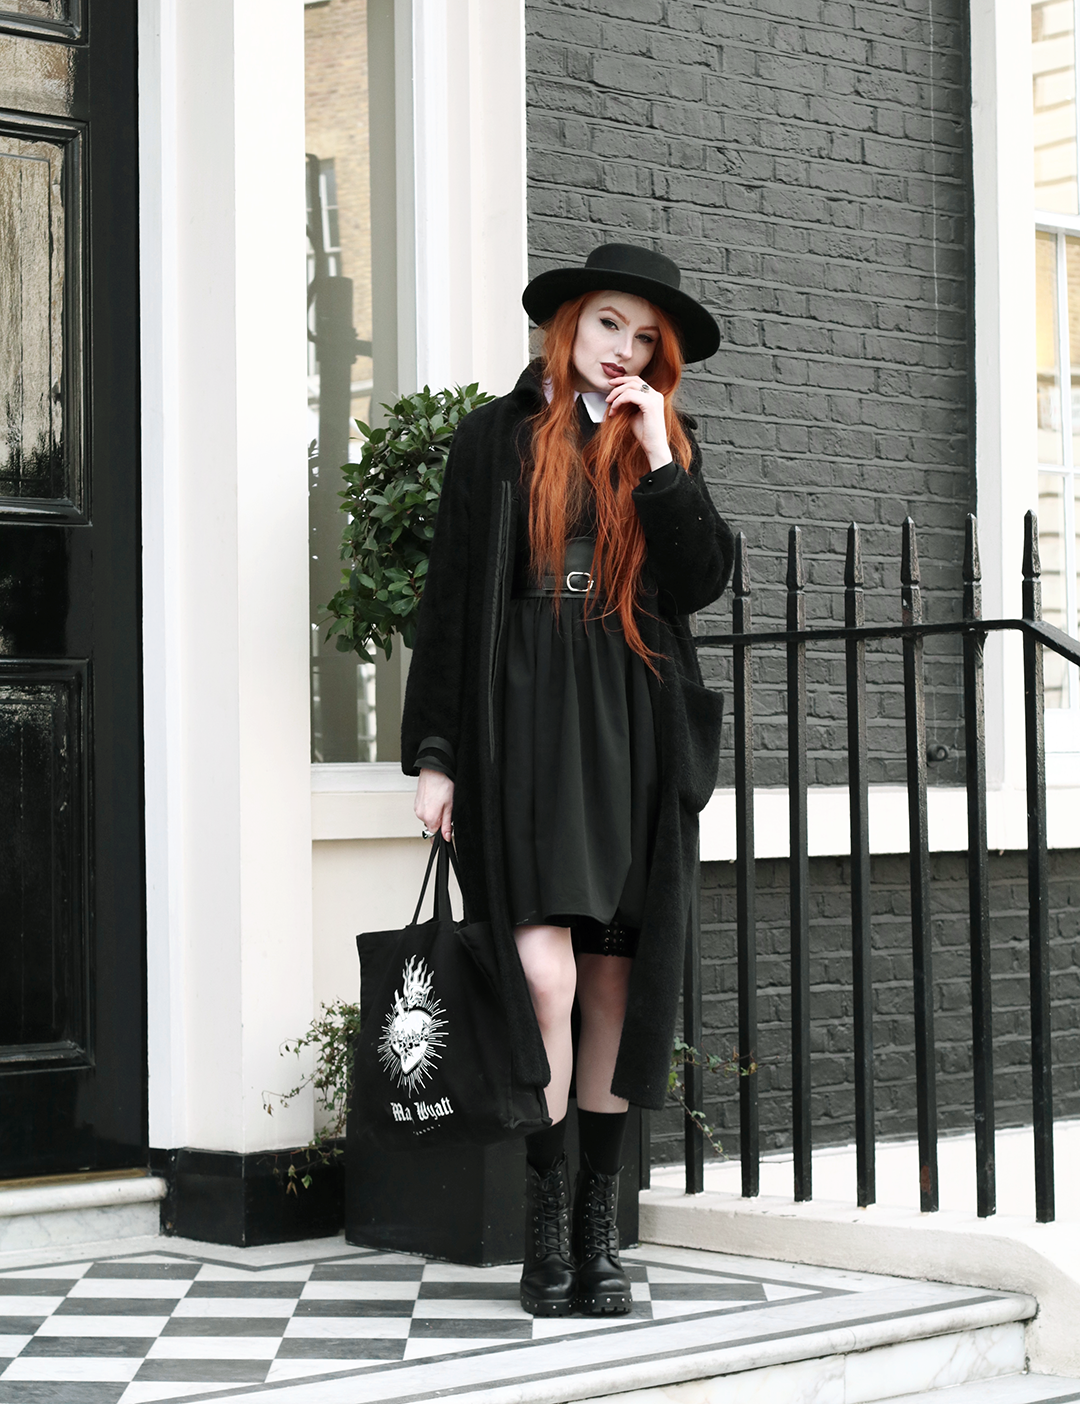 Olivia Emily styles up the Nosferatu Dress from the Deandri Cult Collection